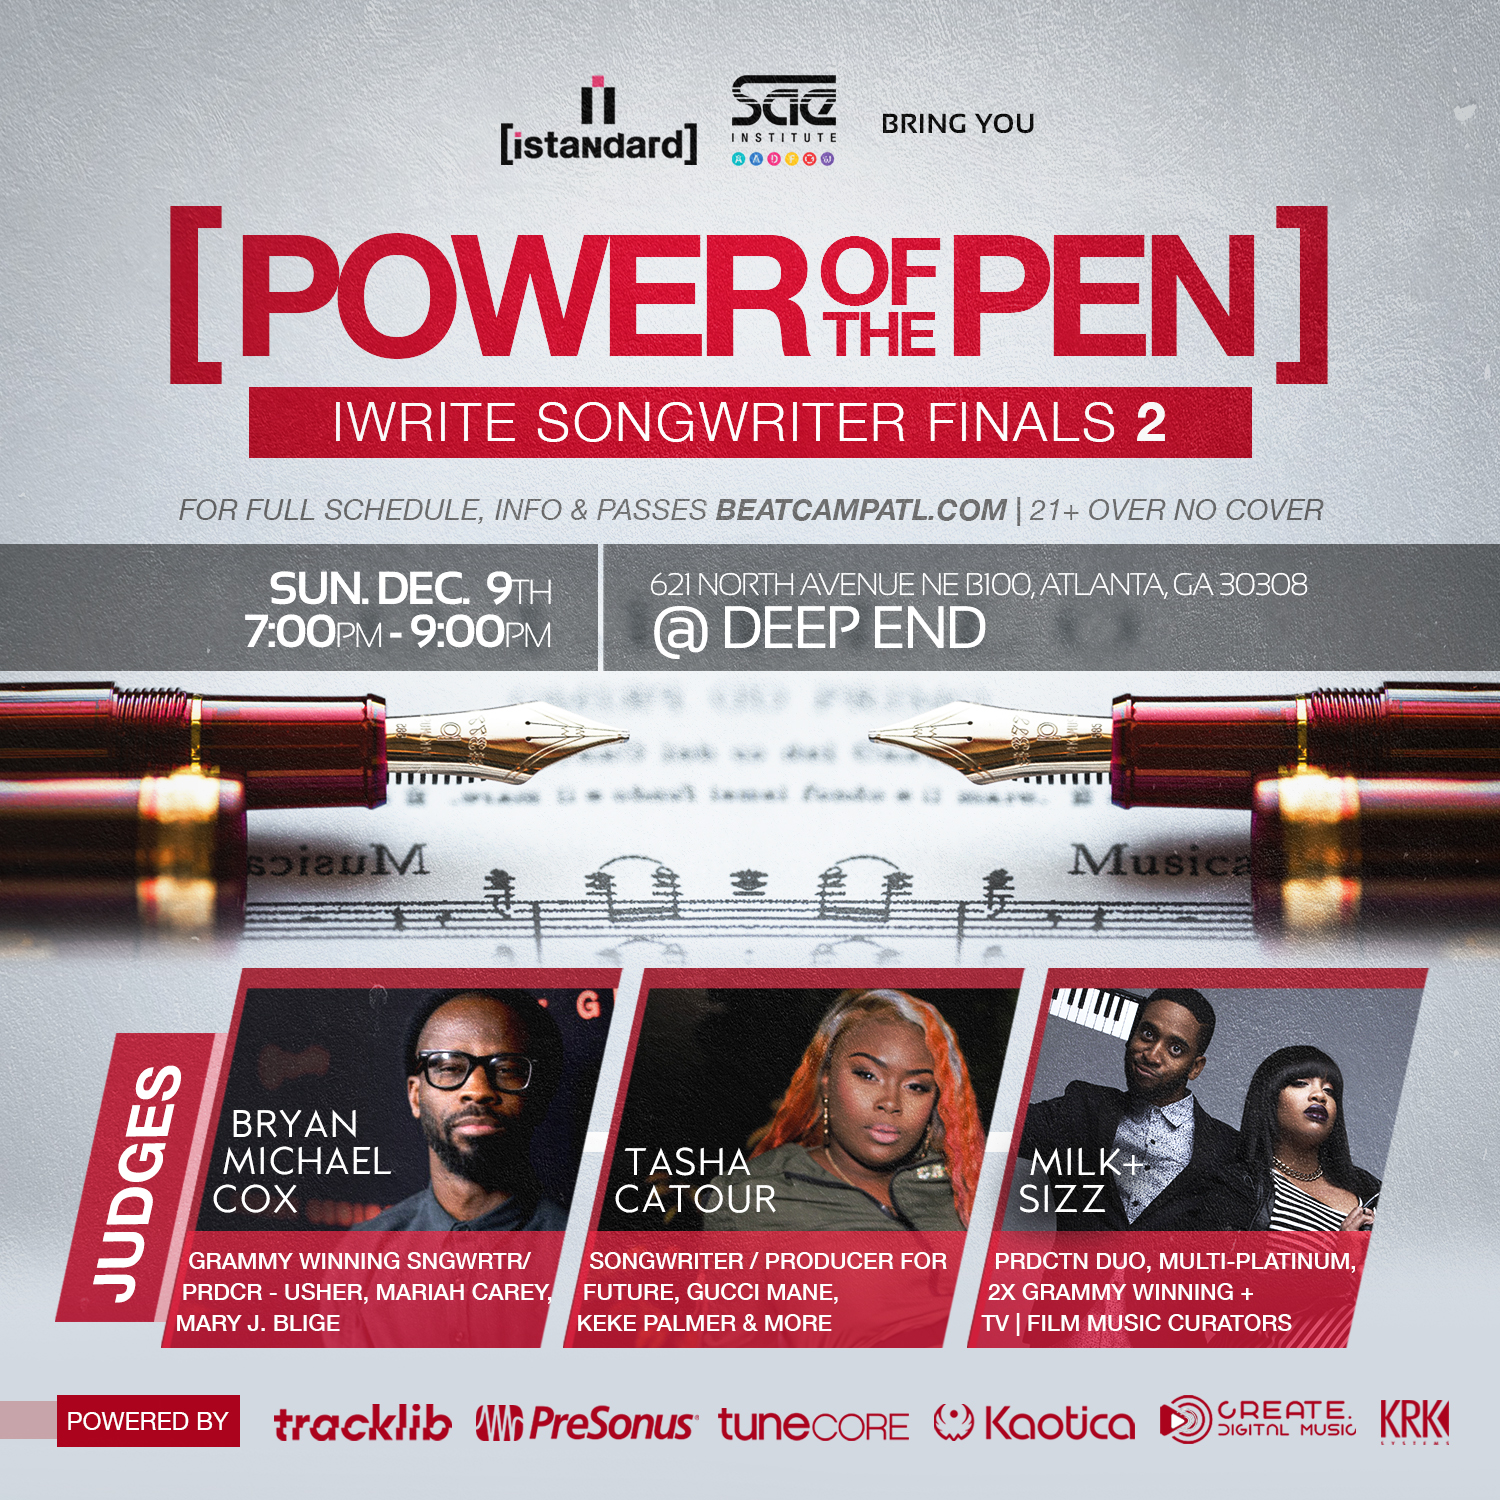 [Power Of The Pen] iWrite Songwriting Finals 2